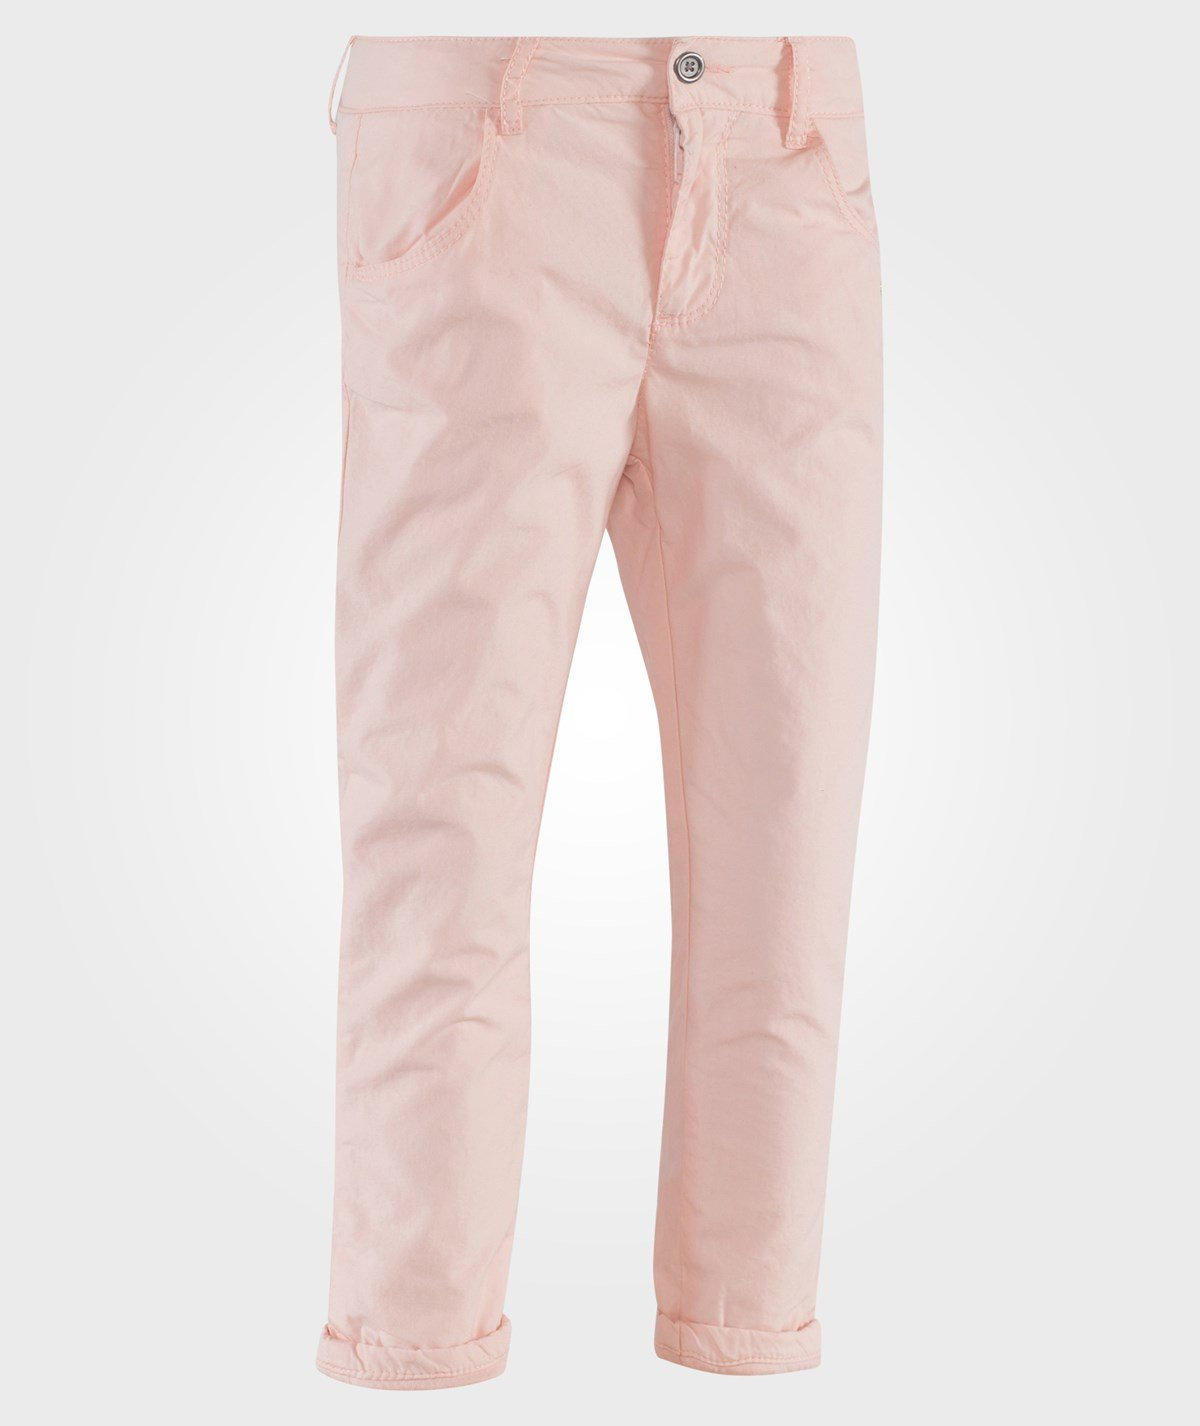 United Colors of Benetton - Casual Five Pocket With Heart Details ... 0c672d67729a4